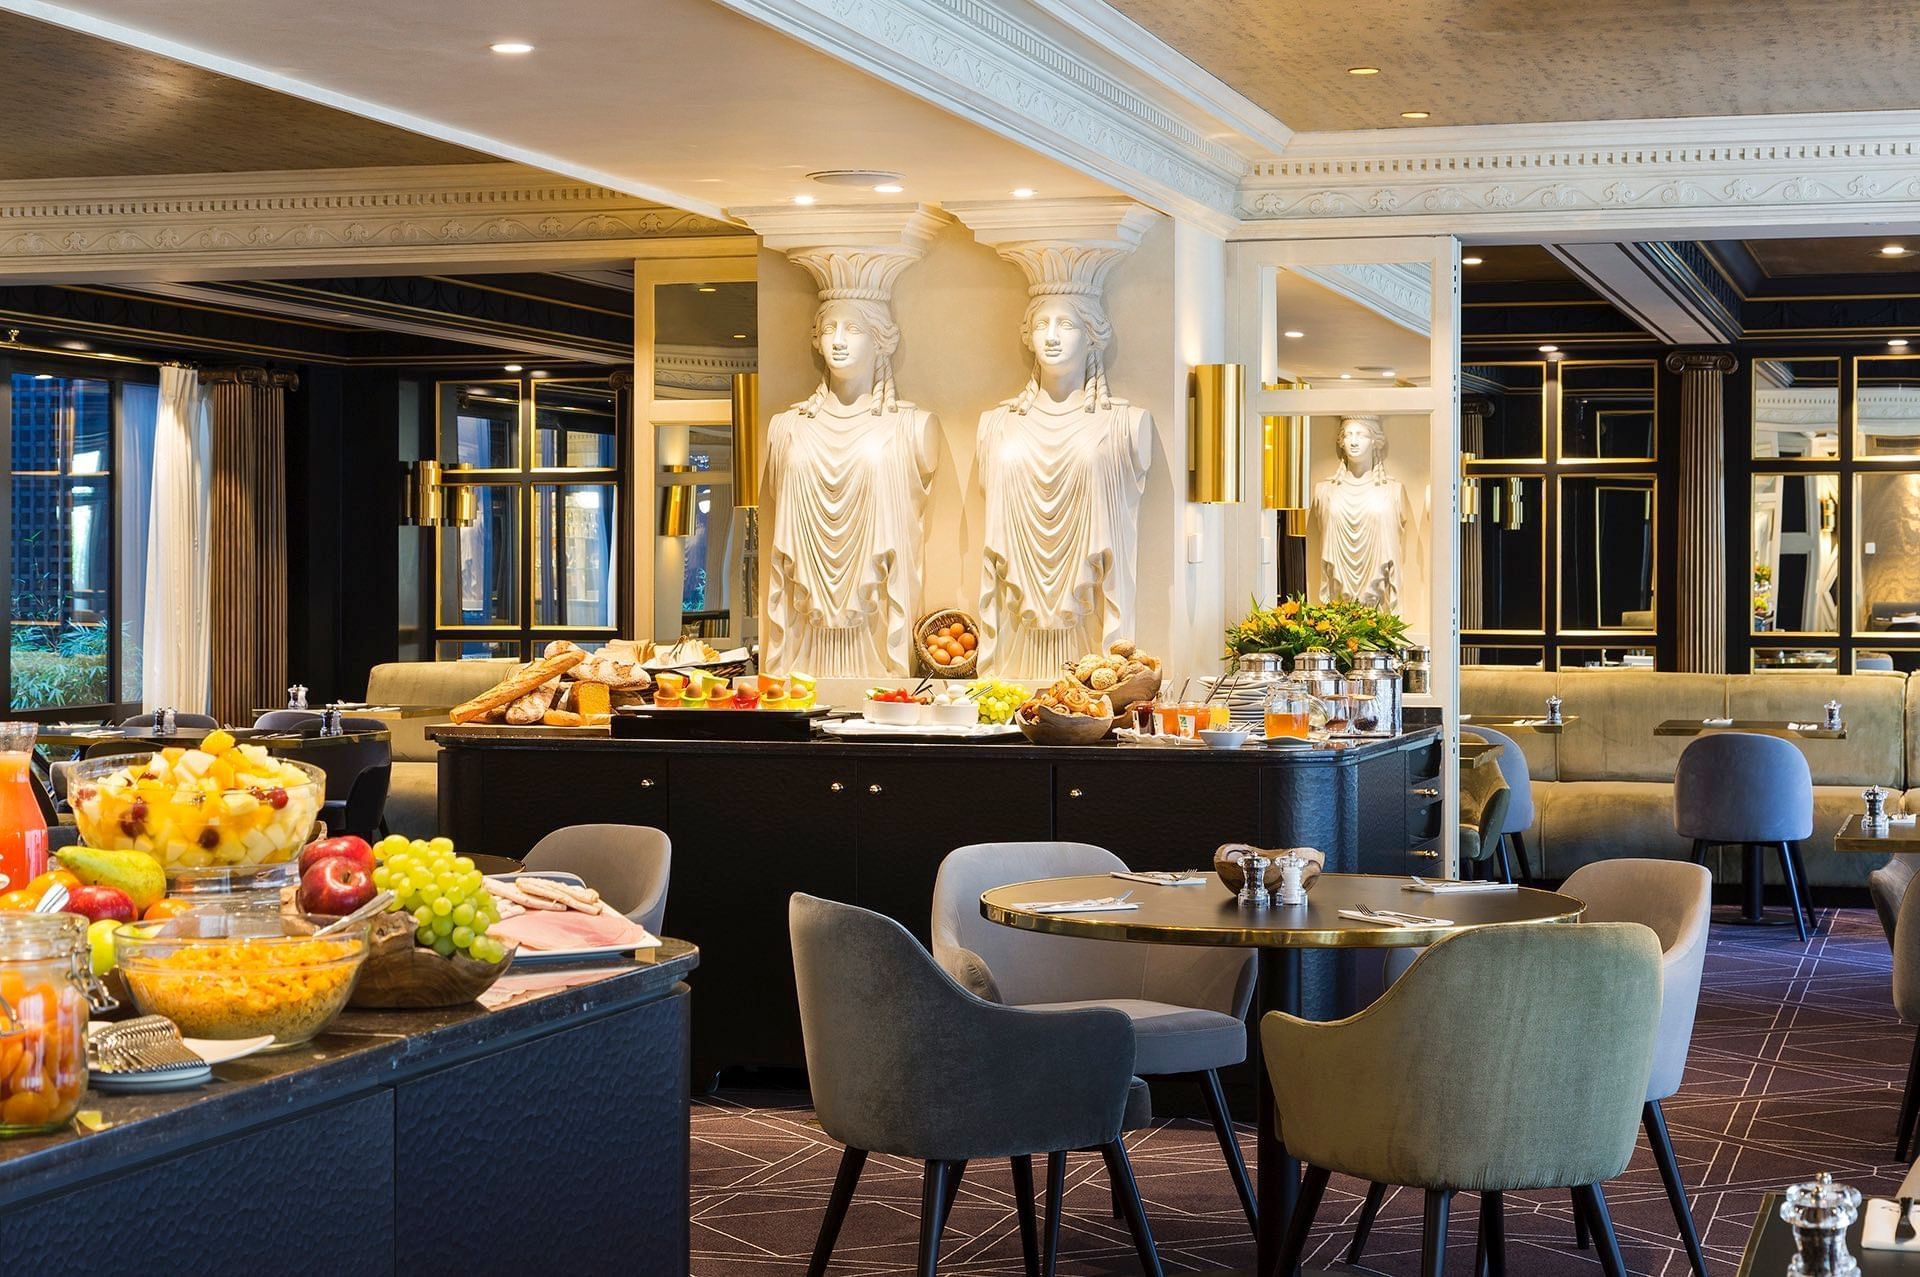 The Avenue Breakfast Buffet at Hotel Barsey by Warwick